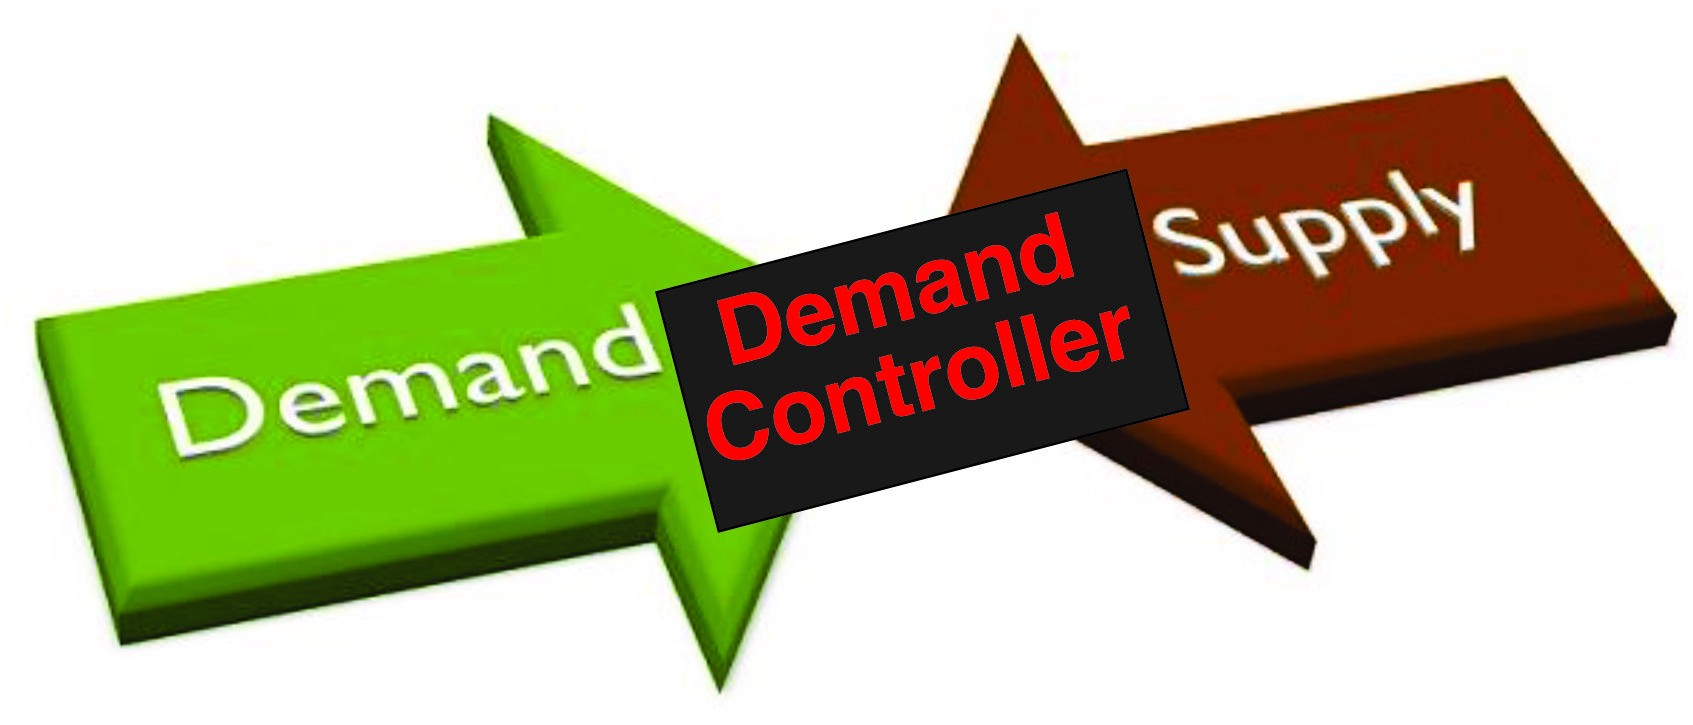 A new World leader has emerged and displaced the suppliers; it is called the DEMAND CONTROLLER